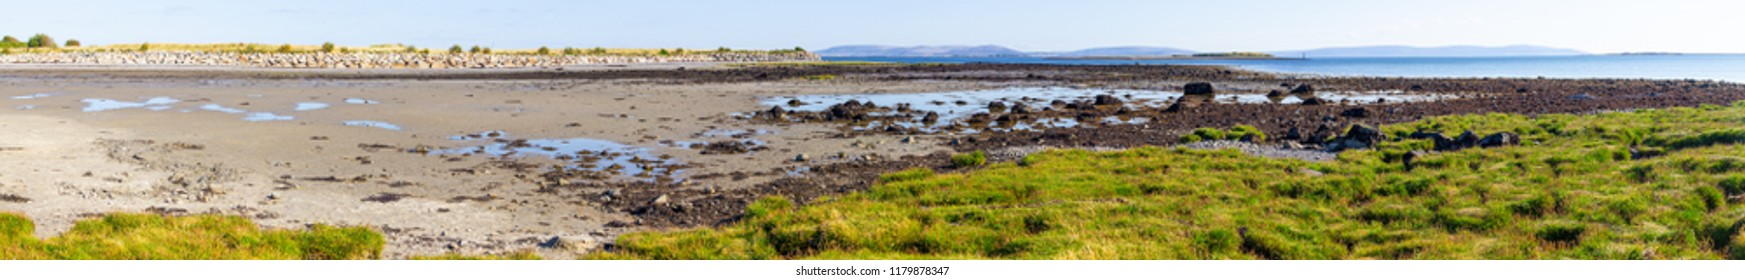 Panorama of Ballyloughane Beach with Galway bay in background, Galway, Ireland